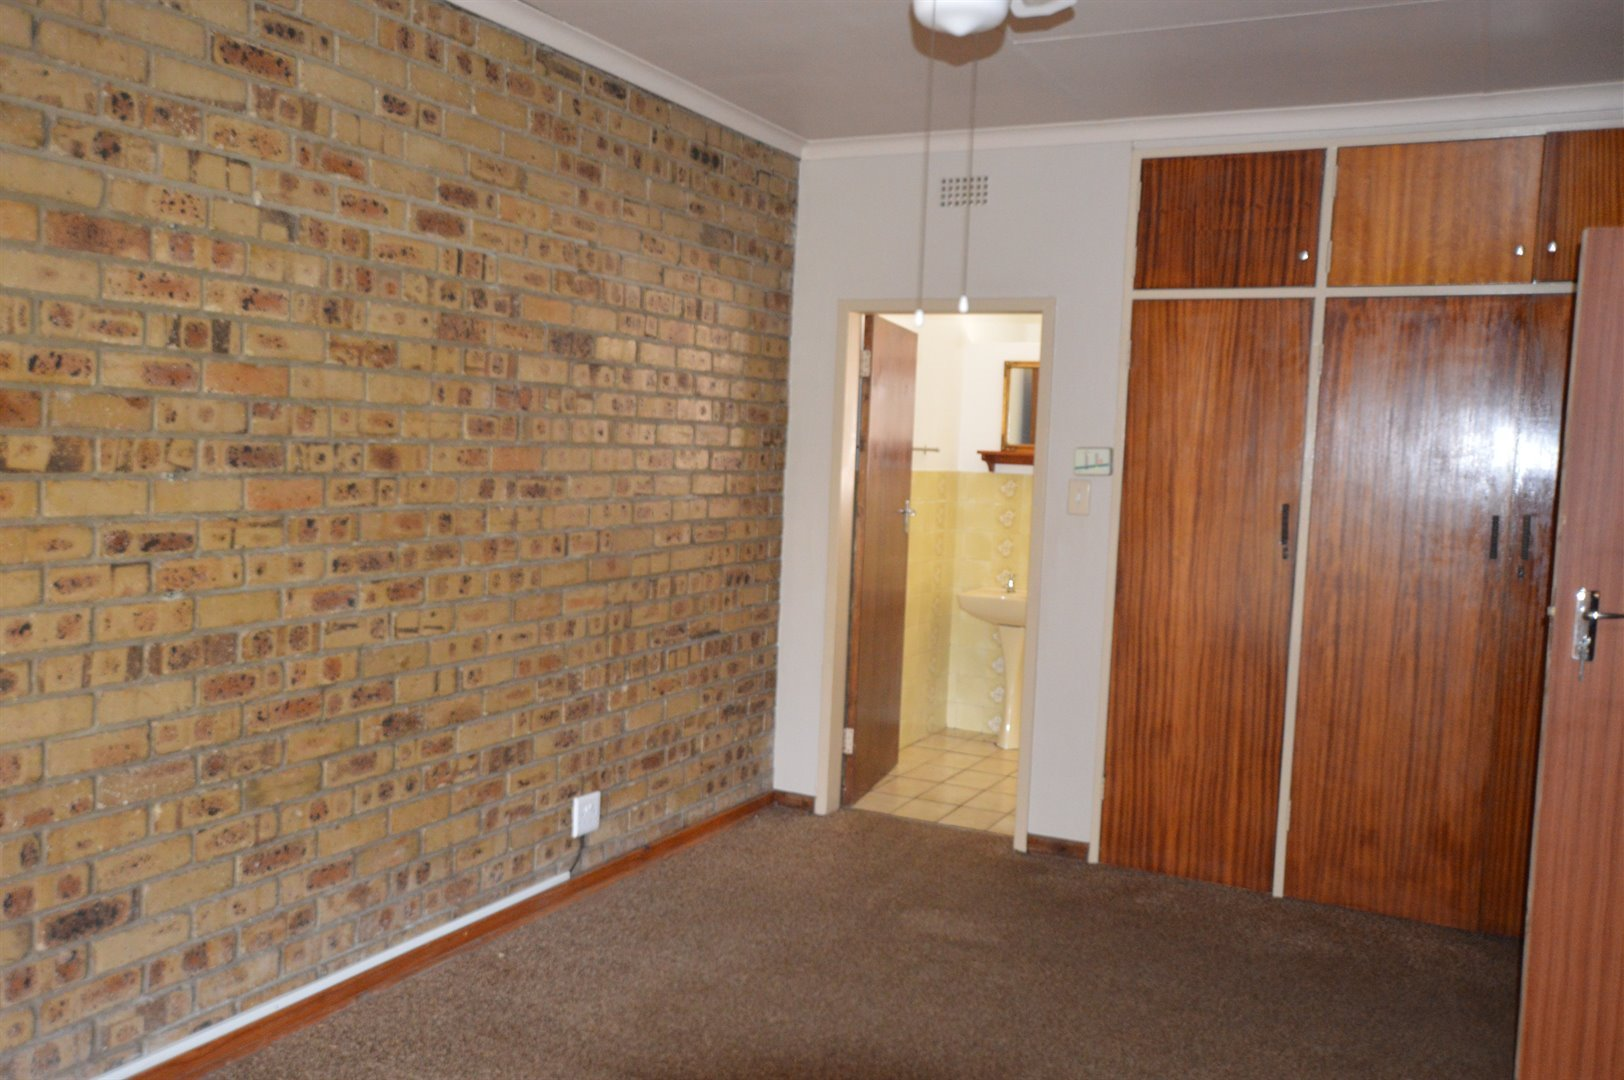 Vanderbijlpark Se 2 property for sale. Ref No: 13623209. Picture no 12